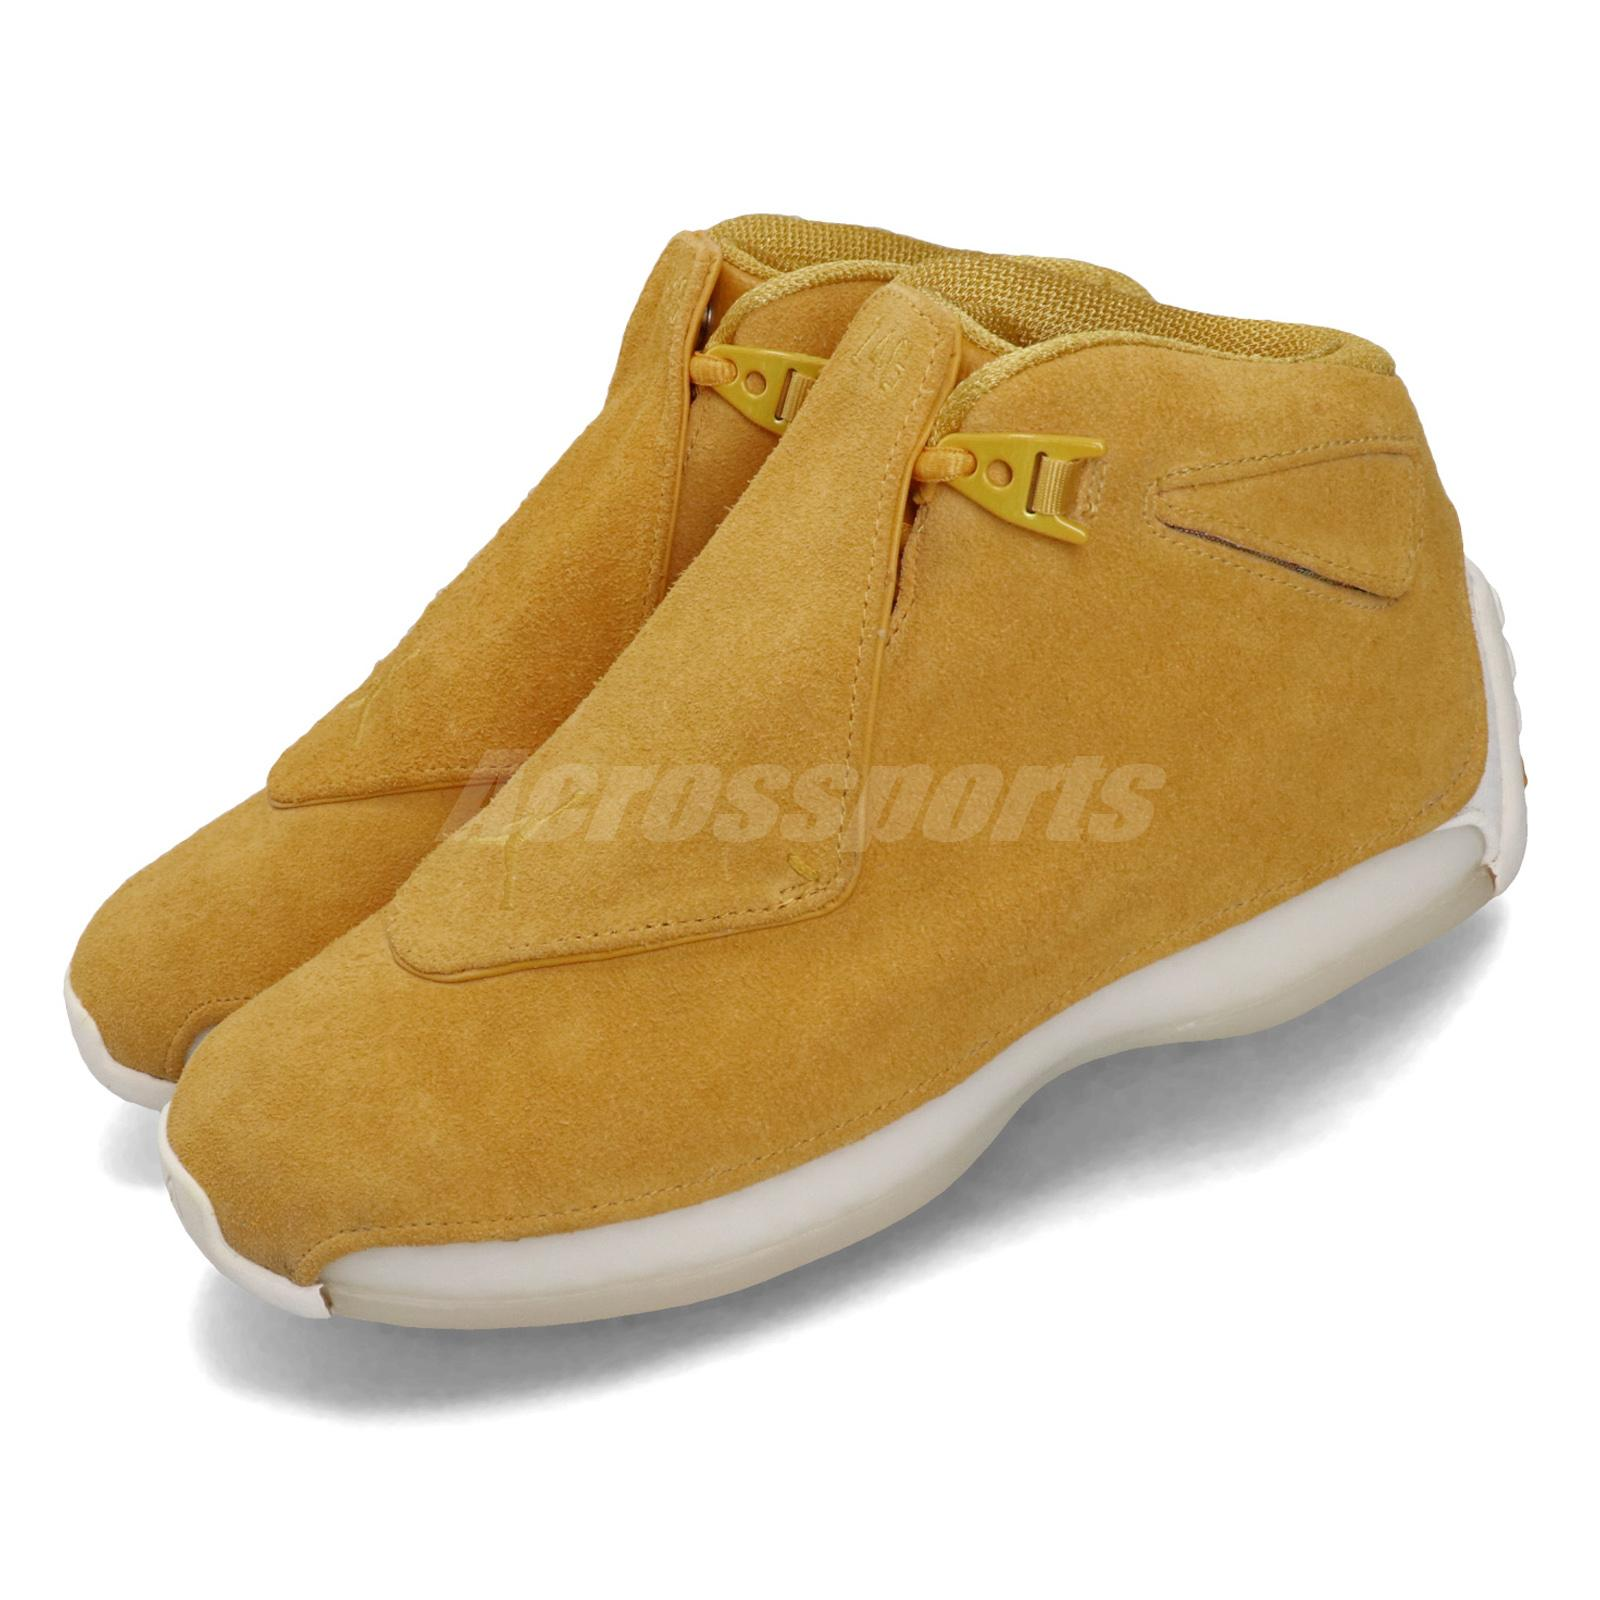 9b57fe812f5ab4 Details about Nike Air Jordan 18 Retro Yellow Ochre Suede Mens Basketball  Shoes AA2494-701